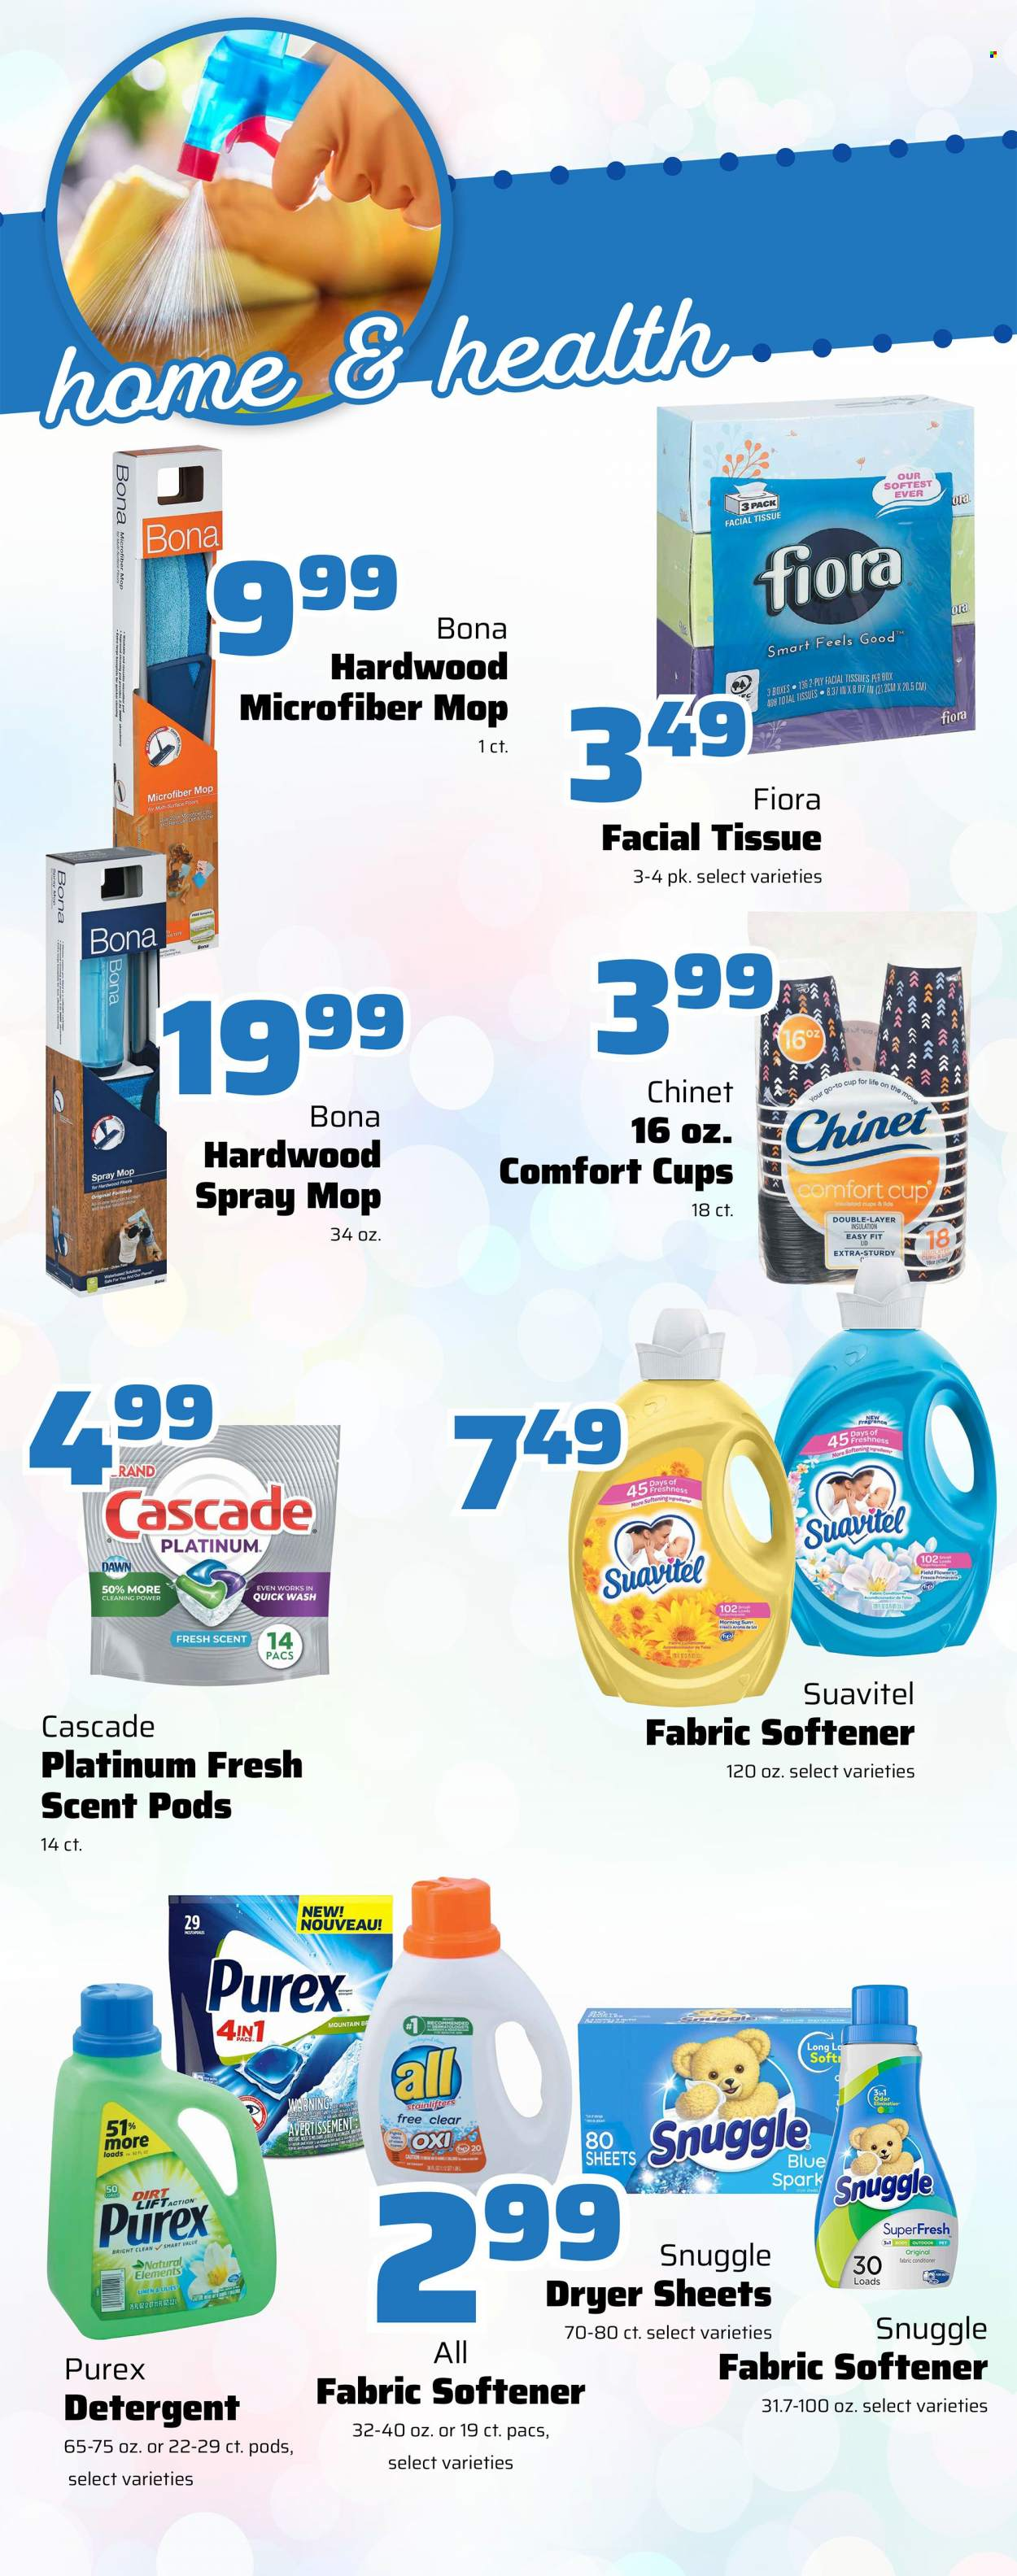 County Market Home & Health Ad from september 15 to 21 2021 - Page 1